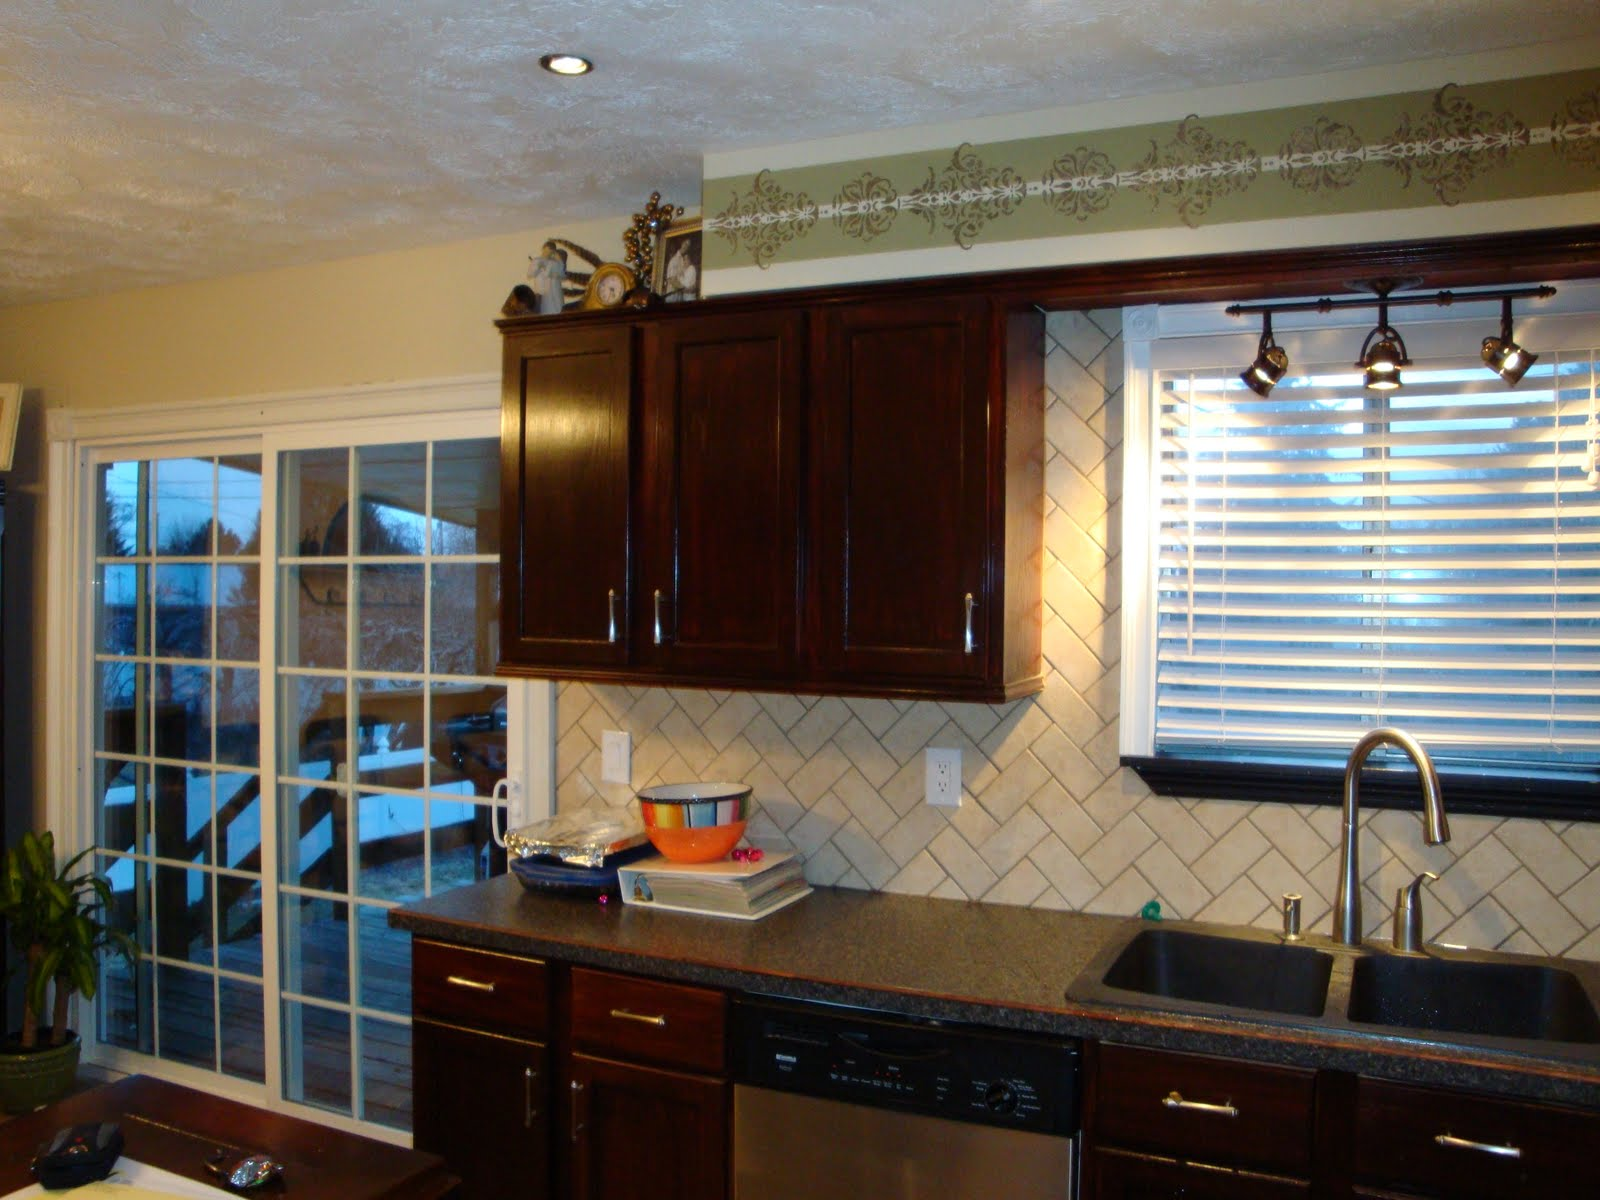 Tickled Pink Kitchen Remodel All For Under 3 000